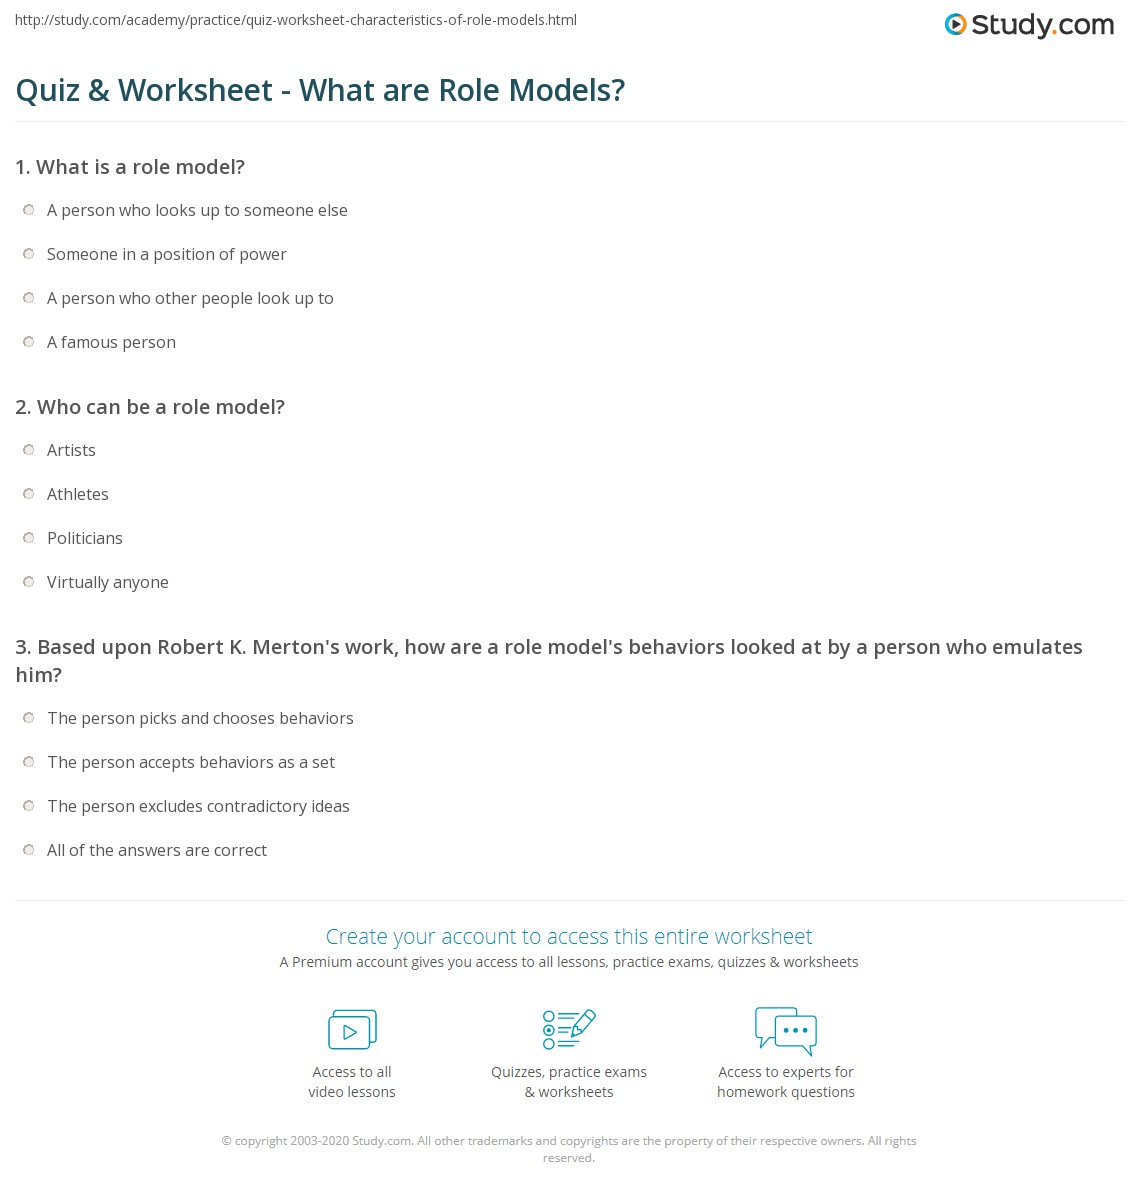 quiz & worksheet - what are role models? | study